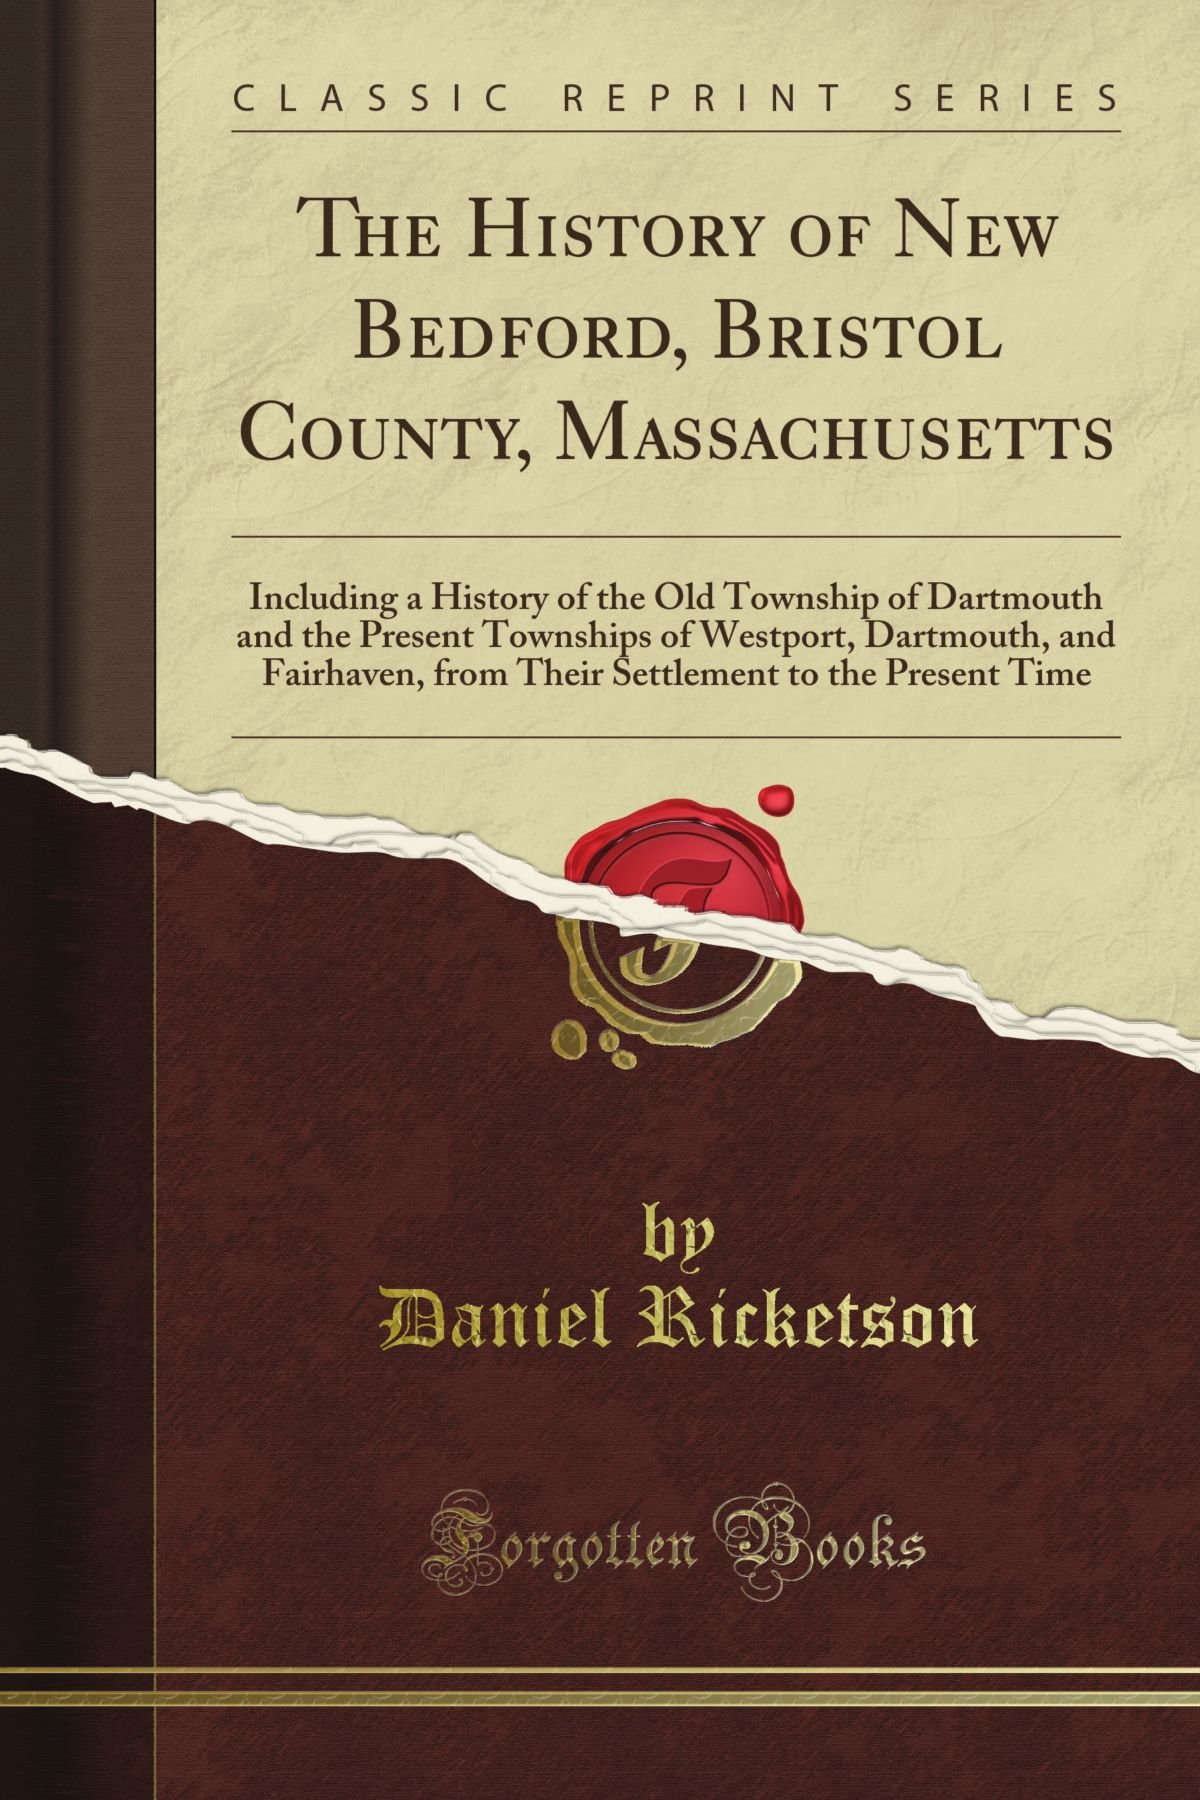 Download The History of New Bedford, Bristol County, Massachusetts: Including a History of the Old Township of Dartmouth and the Present Townships of Westport, ... to the Present Time (Classic Reprint) ebook